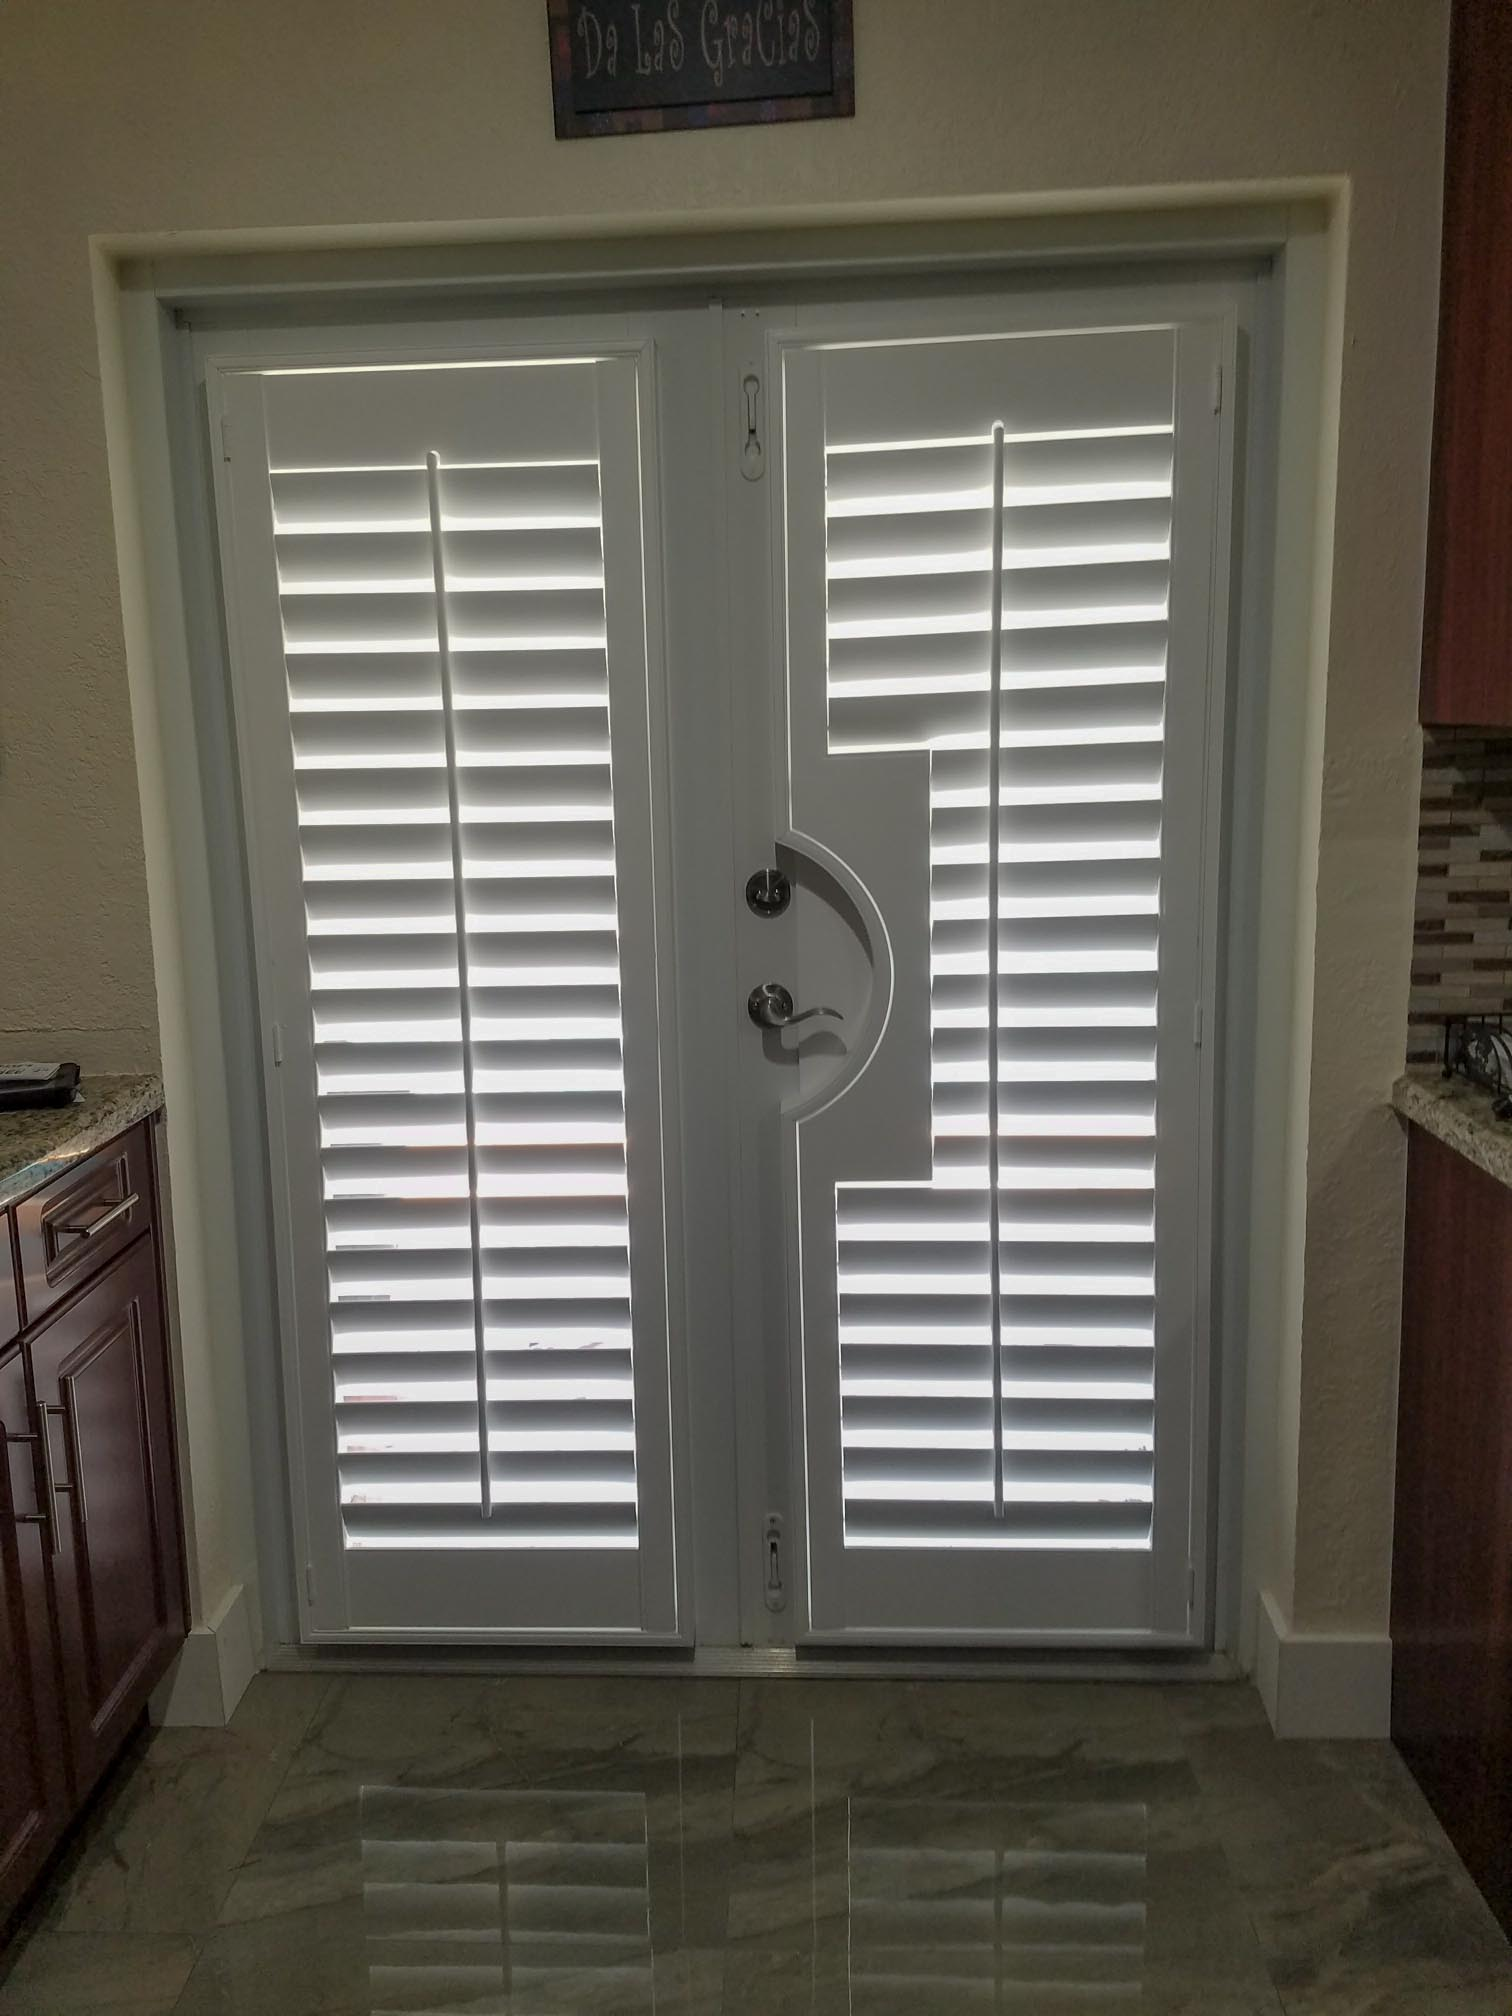 plantation shutters gallery PLANTATION SHUTTERS GALLERY 20171013 140643